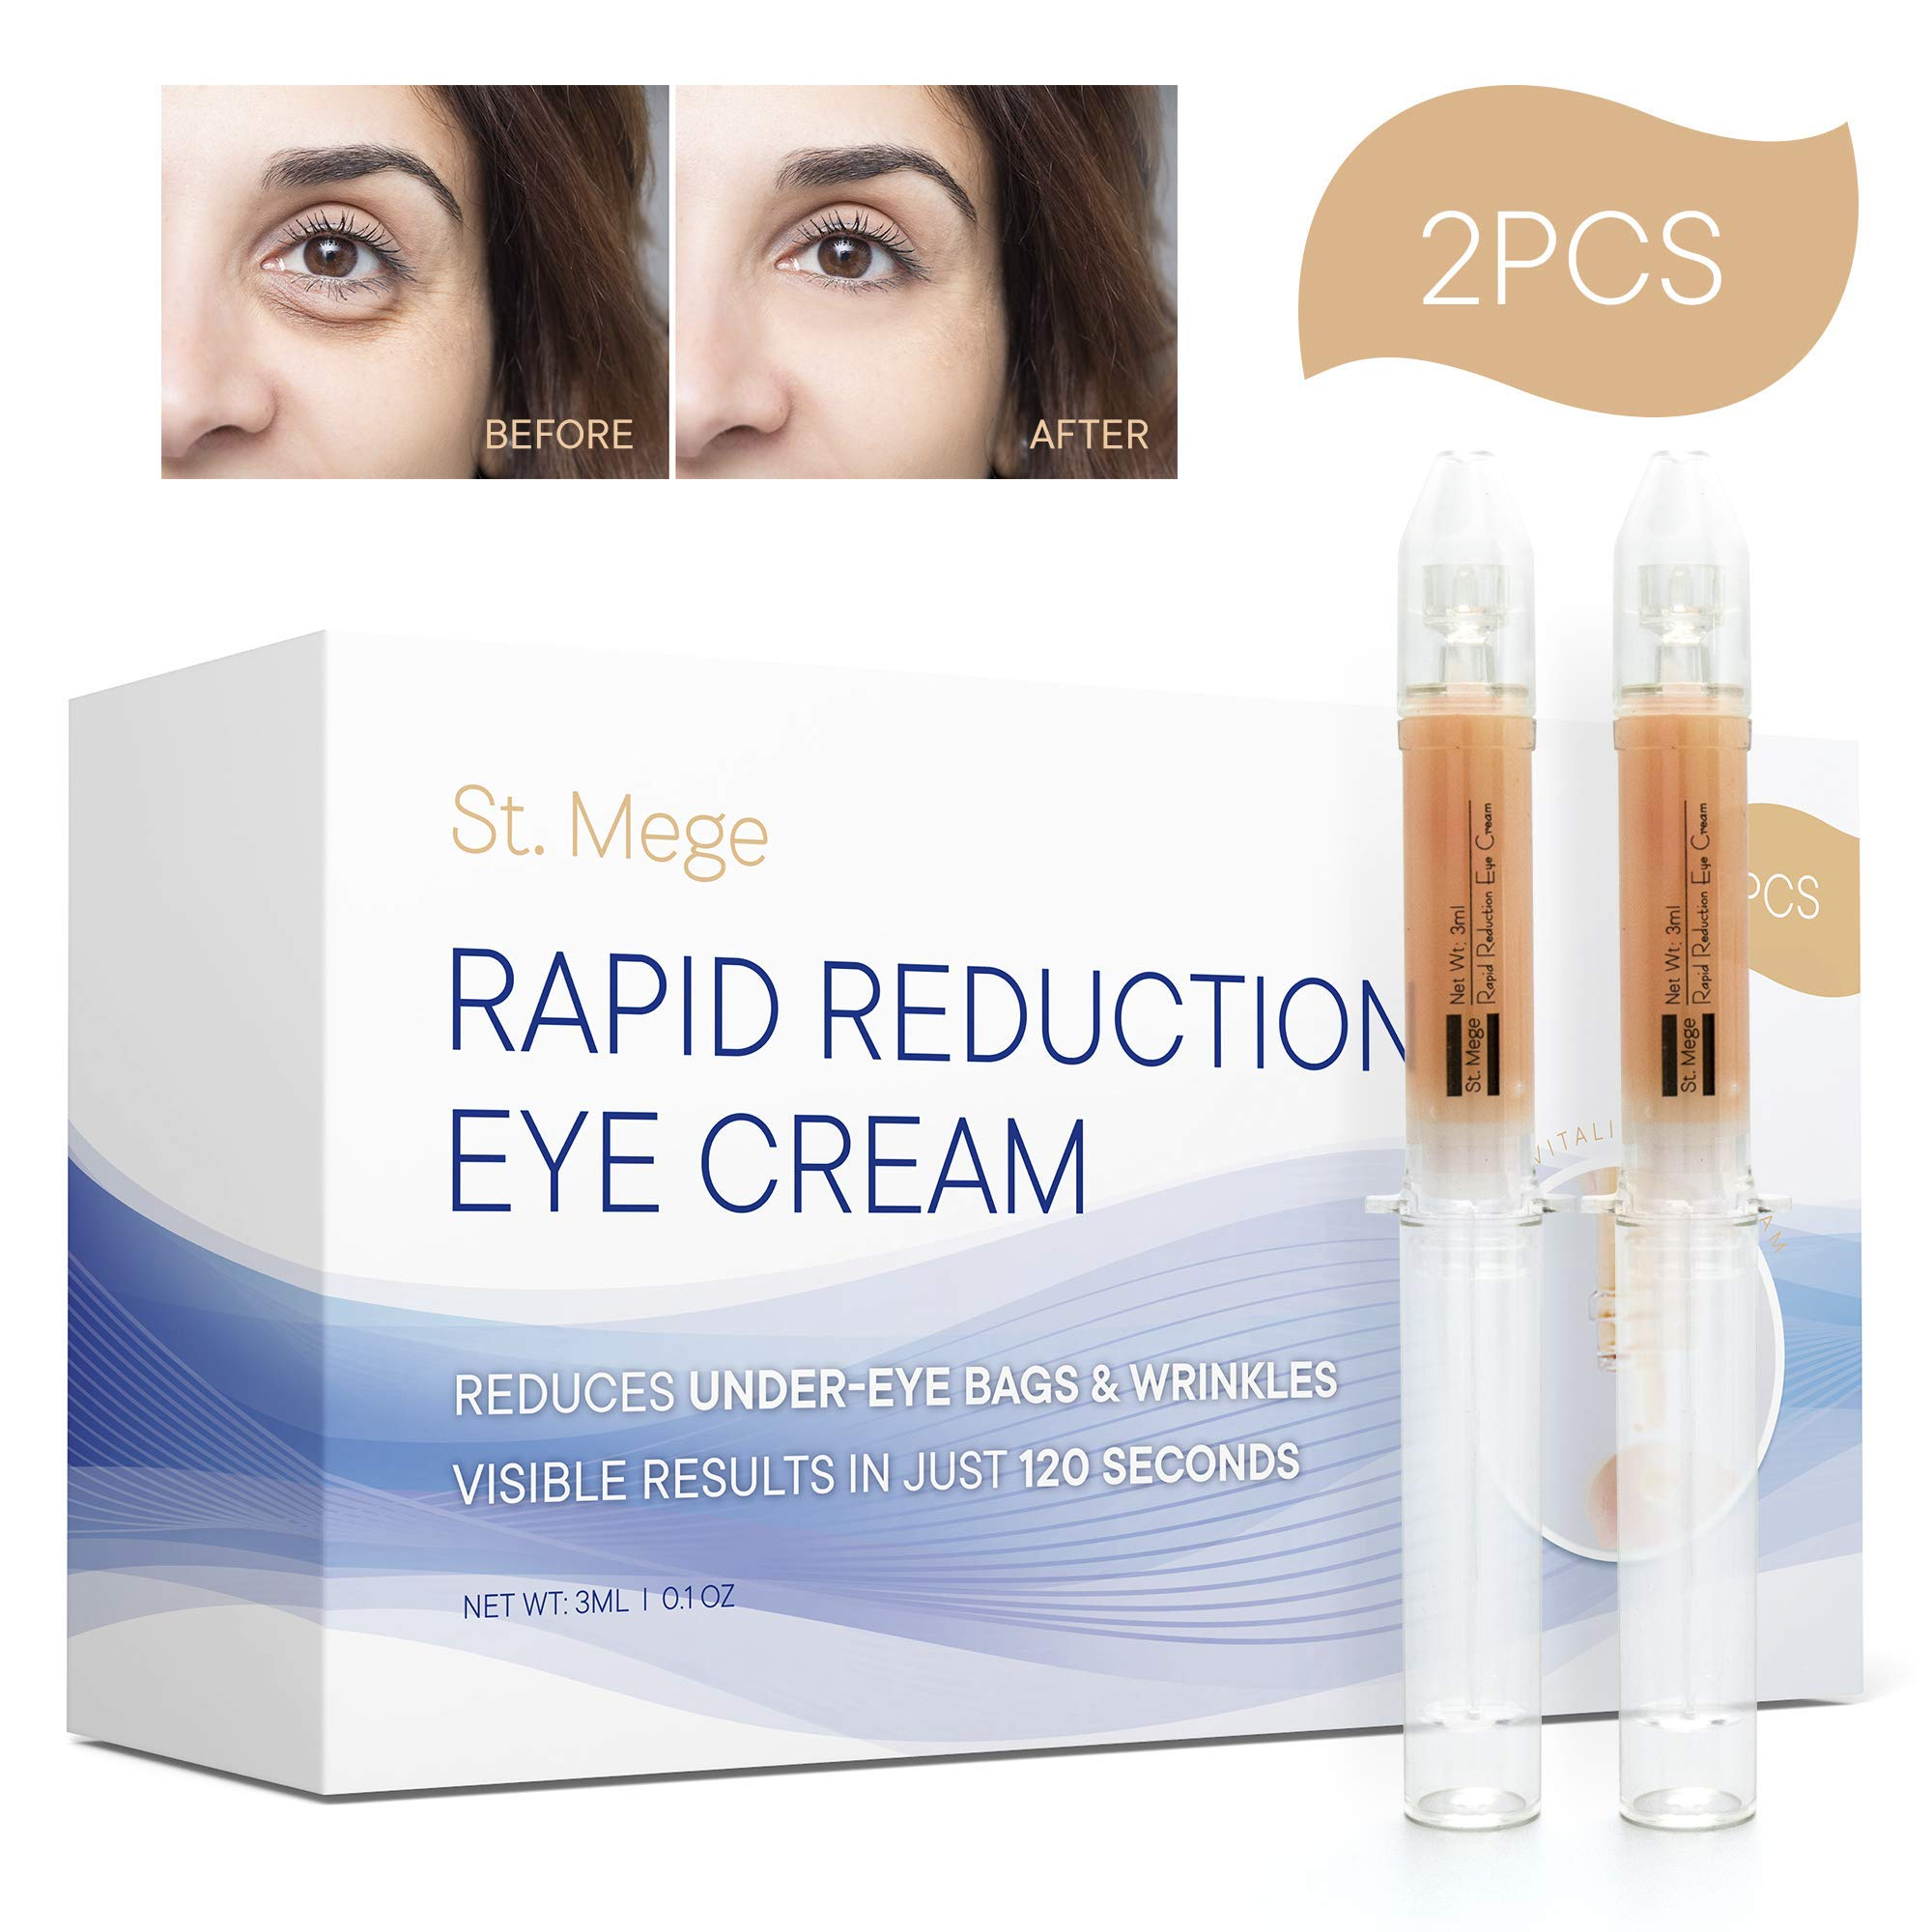 Rapid Reduction Eye Cream for Rapidly Reducing Bagginess, Puffiness, Dark Circles and Wrinkles in 120 Seconds by St. Mege 2Pcs by St. Mege (Image #1)